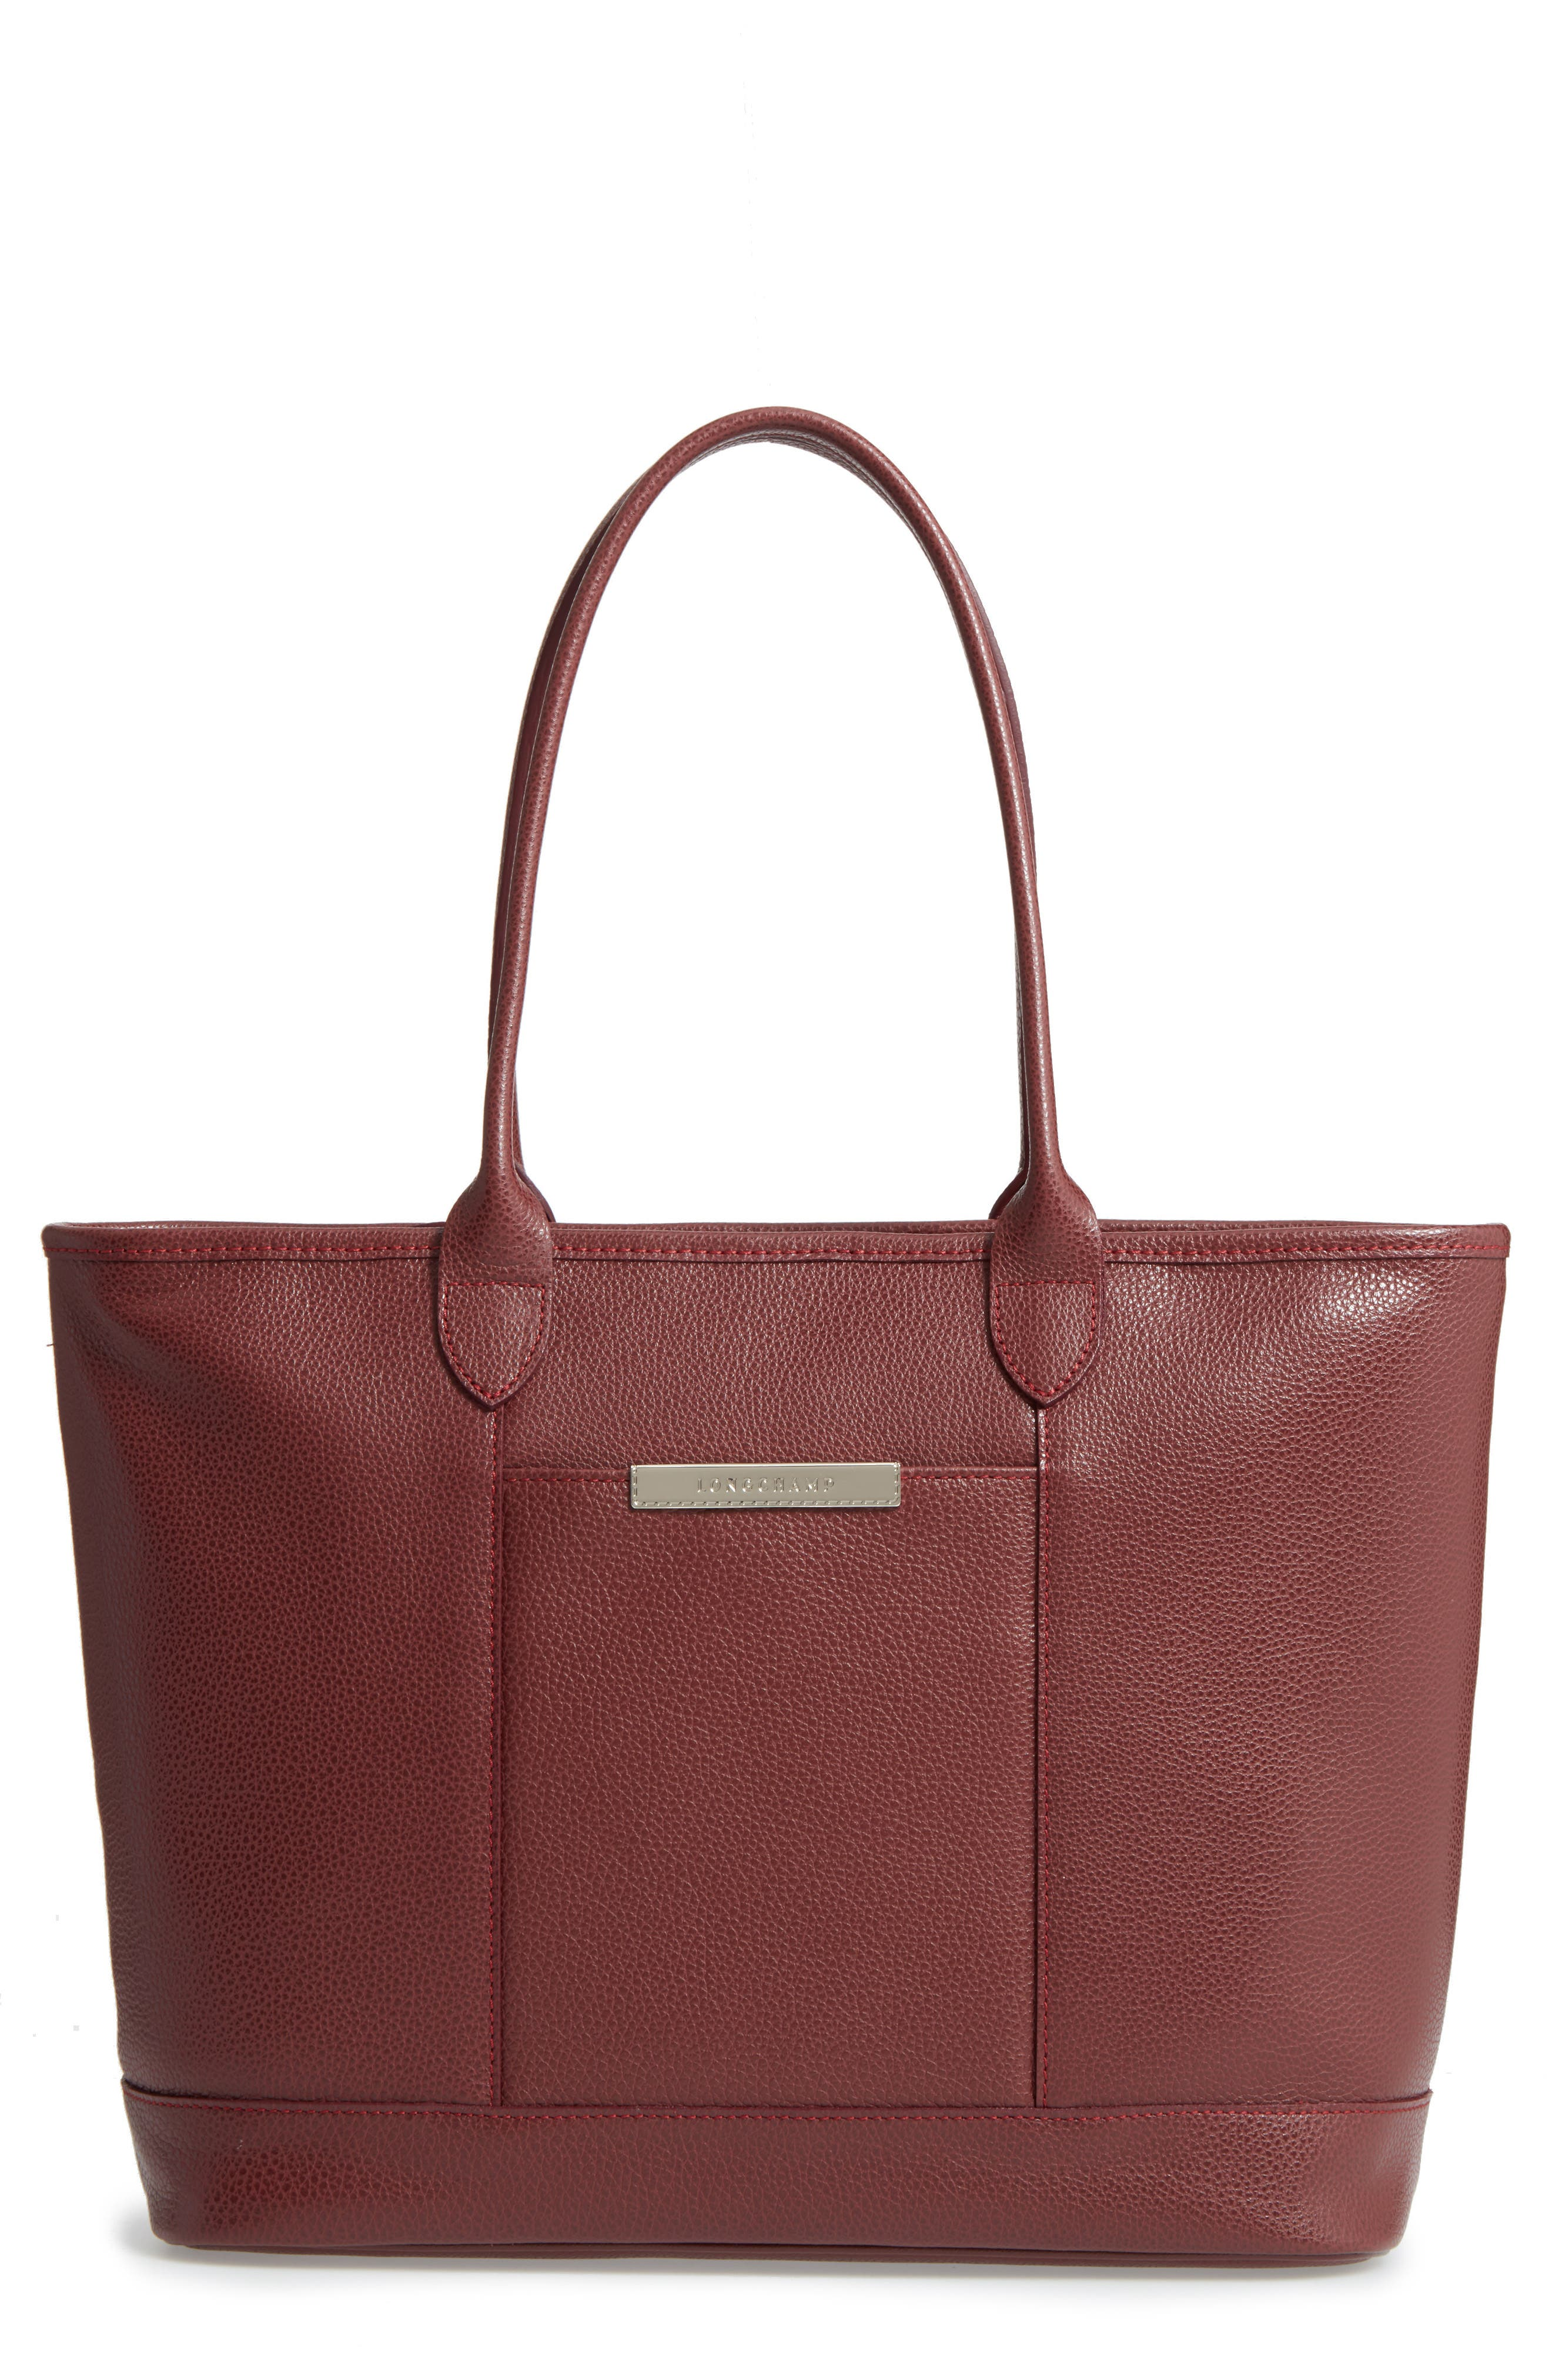 'Veau' Leather Tote,                         Main,                         color, Red Lacquer